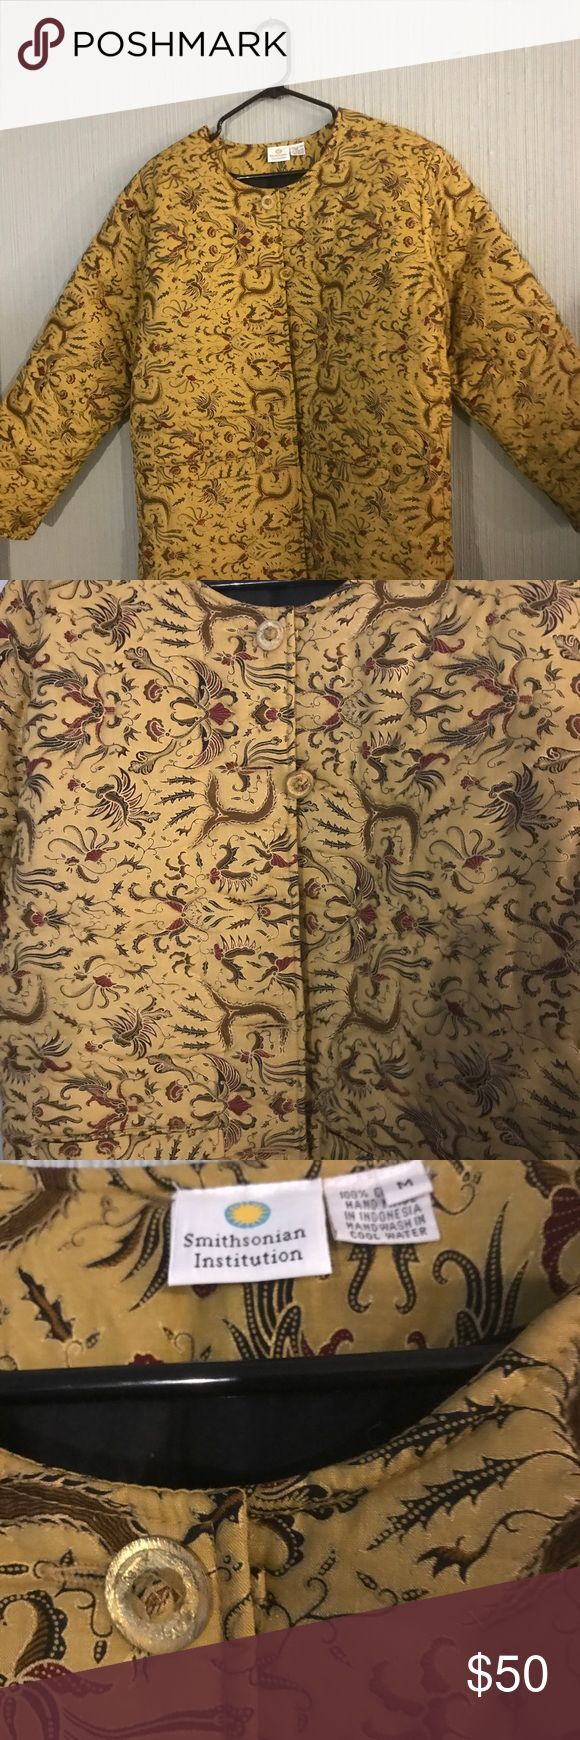 "Quilted jacket, Smithsonian catalog Jacket size M, 28"" long, oriental pattern in black and maroon on a butterscotch colored background. Smithsonian Jackets & Coats"